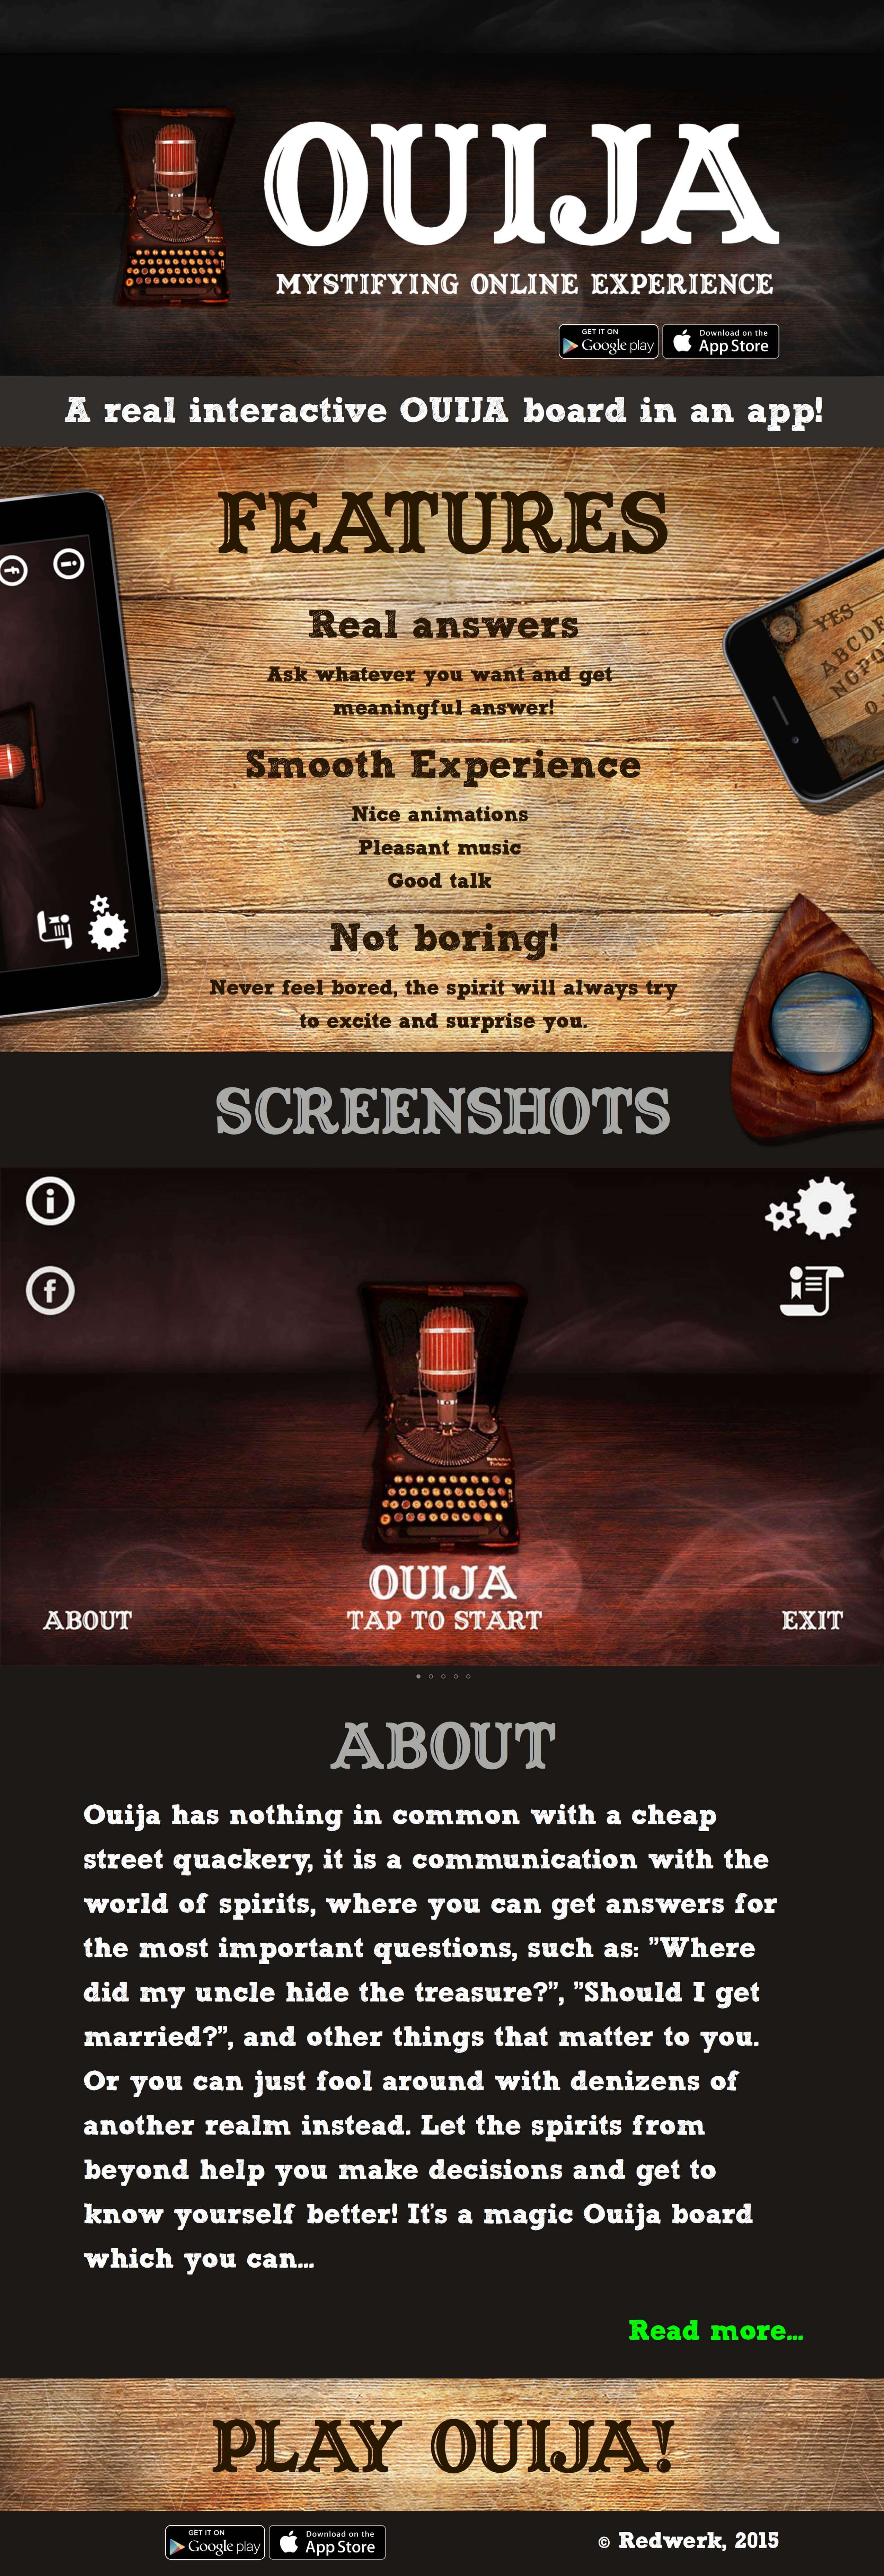 All about Redwerk's Ouija board app on the website